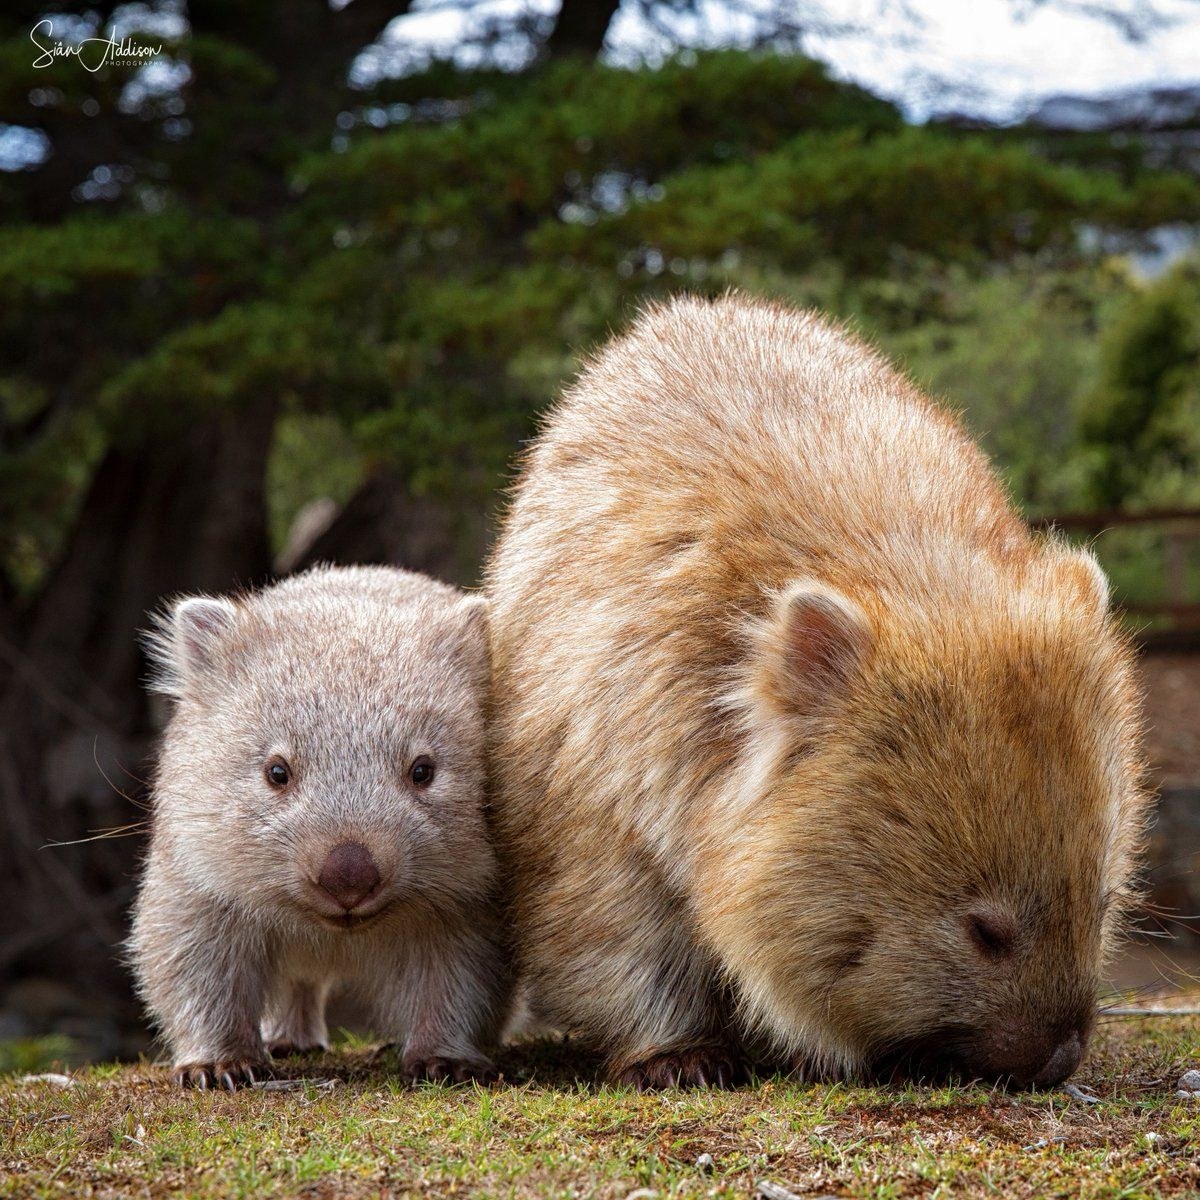 Maria Island Is Known As Tasmania S Noah S Ark The National Park Is Filled With Wild Australian Fauna Including K Australia Animals Cute Animals Baby Animals